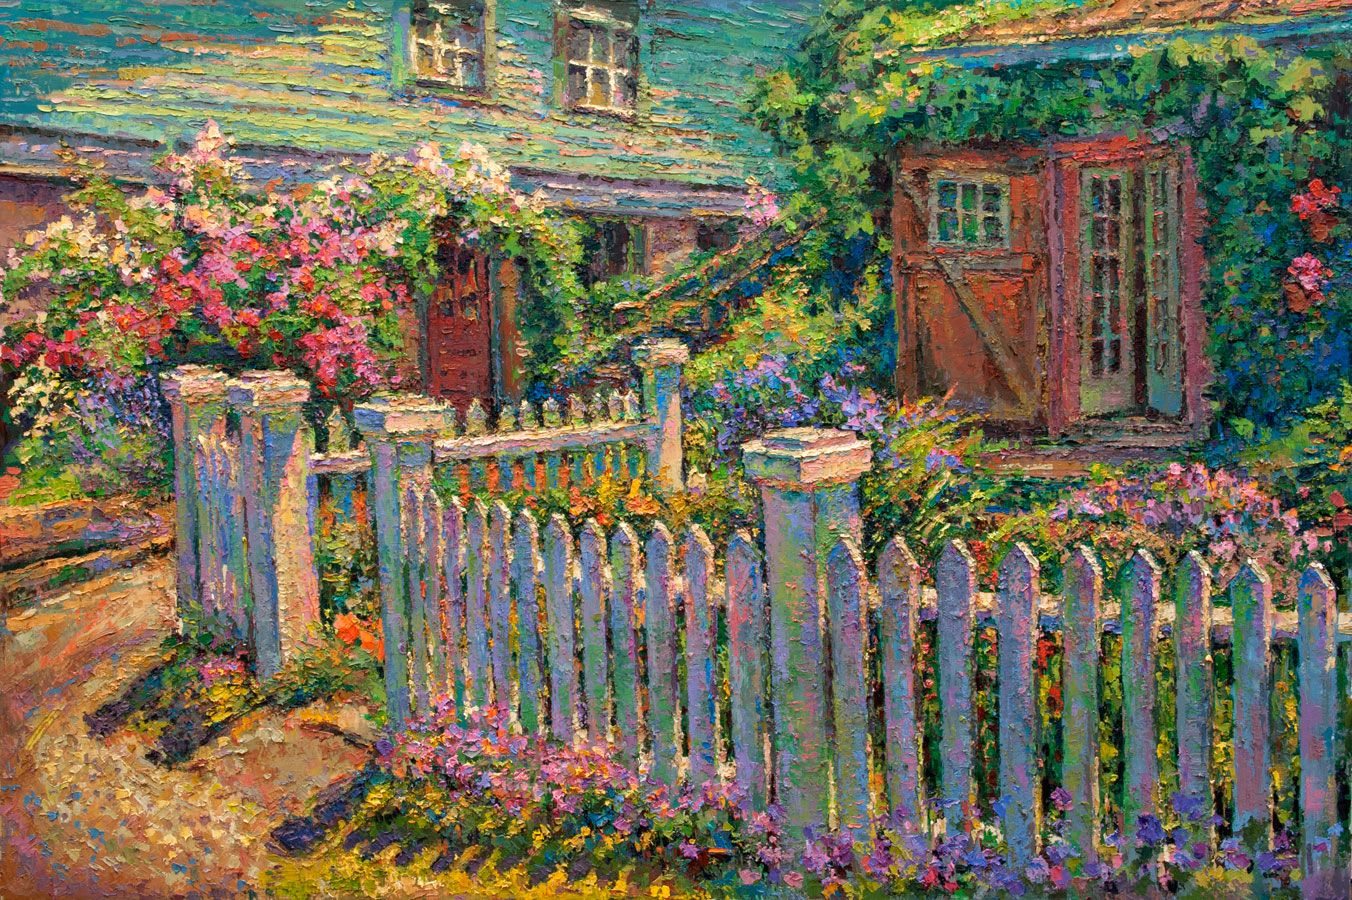 Anoi3h Oil Painting Of The Artists Studio Garden By Leif Nilsson